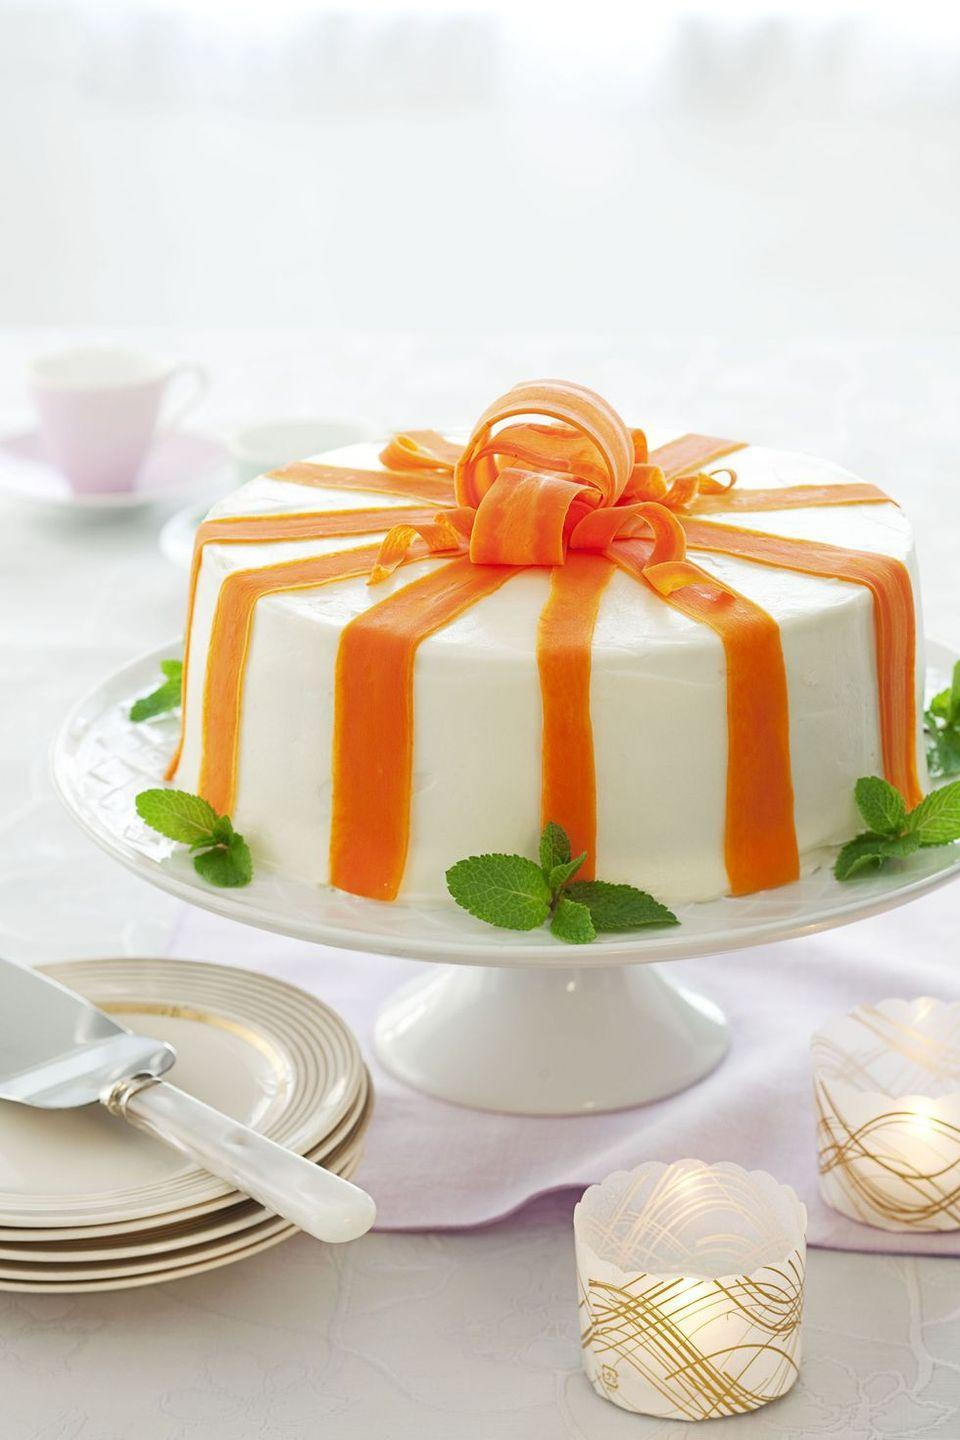 "<p>The only way to make a classic carrot cake even better is to decorate it like a pretty spring present. </p><p><em><a href=""https://www.goodhousekeeping.com/food-recipes/dessert/a19530/carrot-cake-recipe/"" rel=""nofollow noopener"" target=""_blank"" data-ylk=""slk:Get the recipe for Carrot Ribbon Cake »"" class=""link rapid-noclick-resp"">Get the recipe for Carrot Ribbon Cake »</a></em></p>"